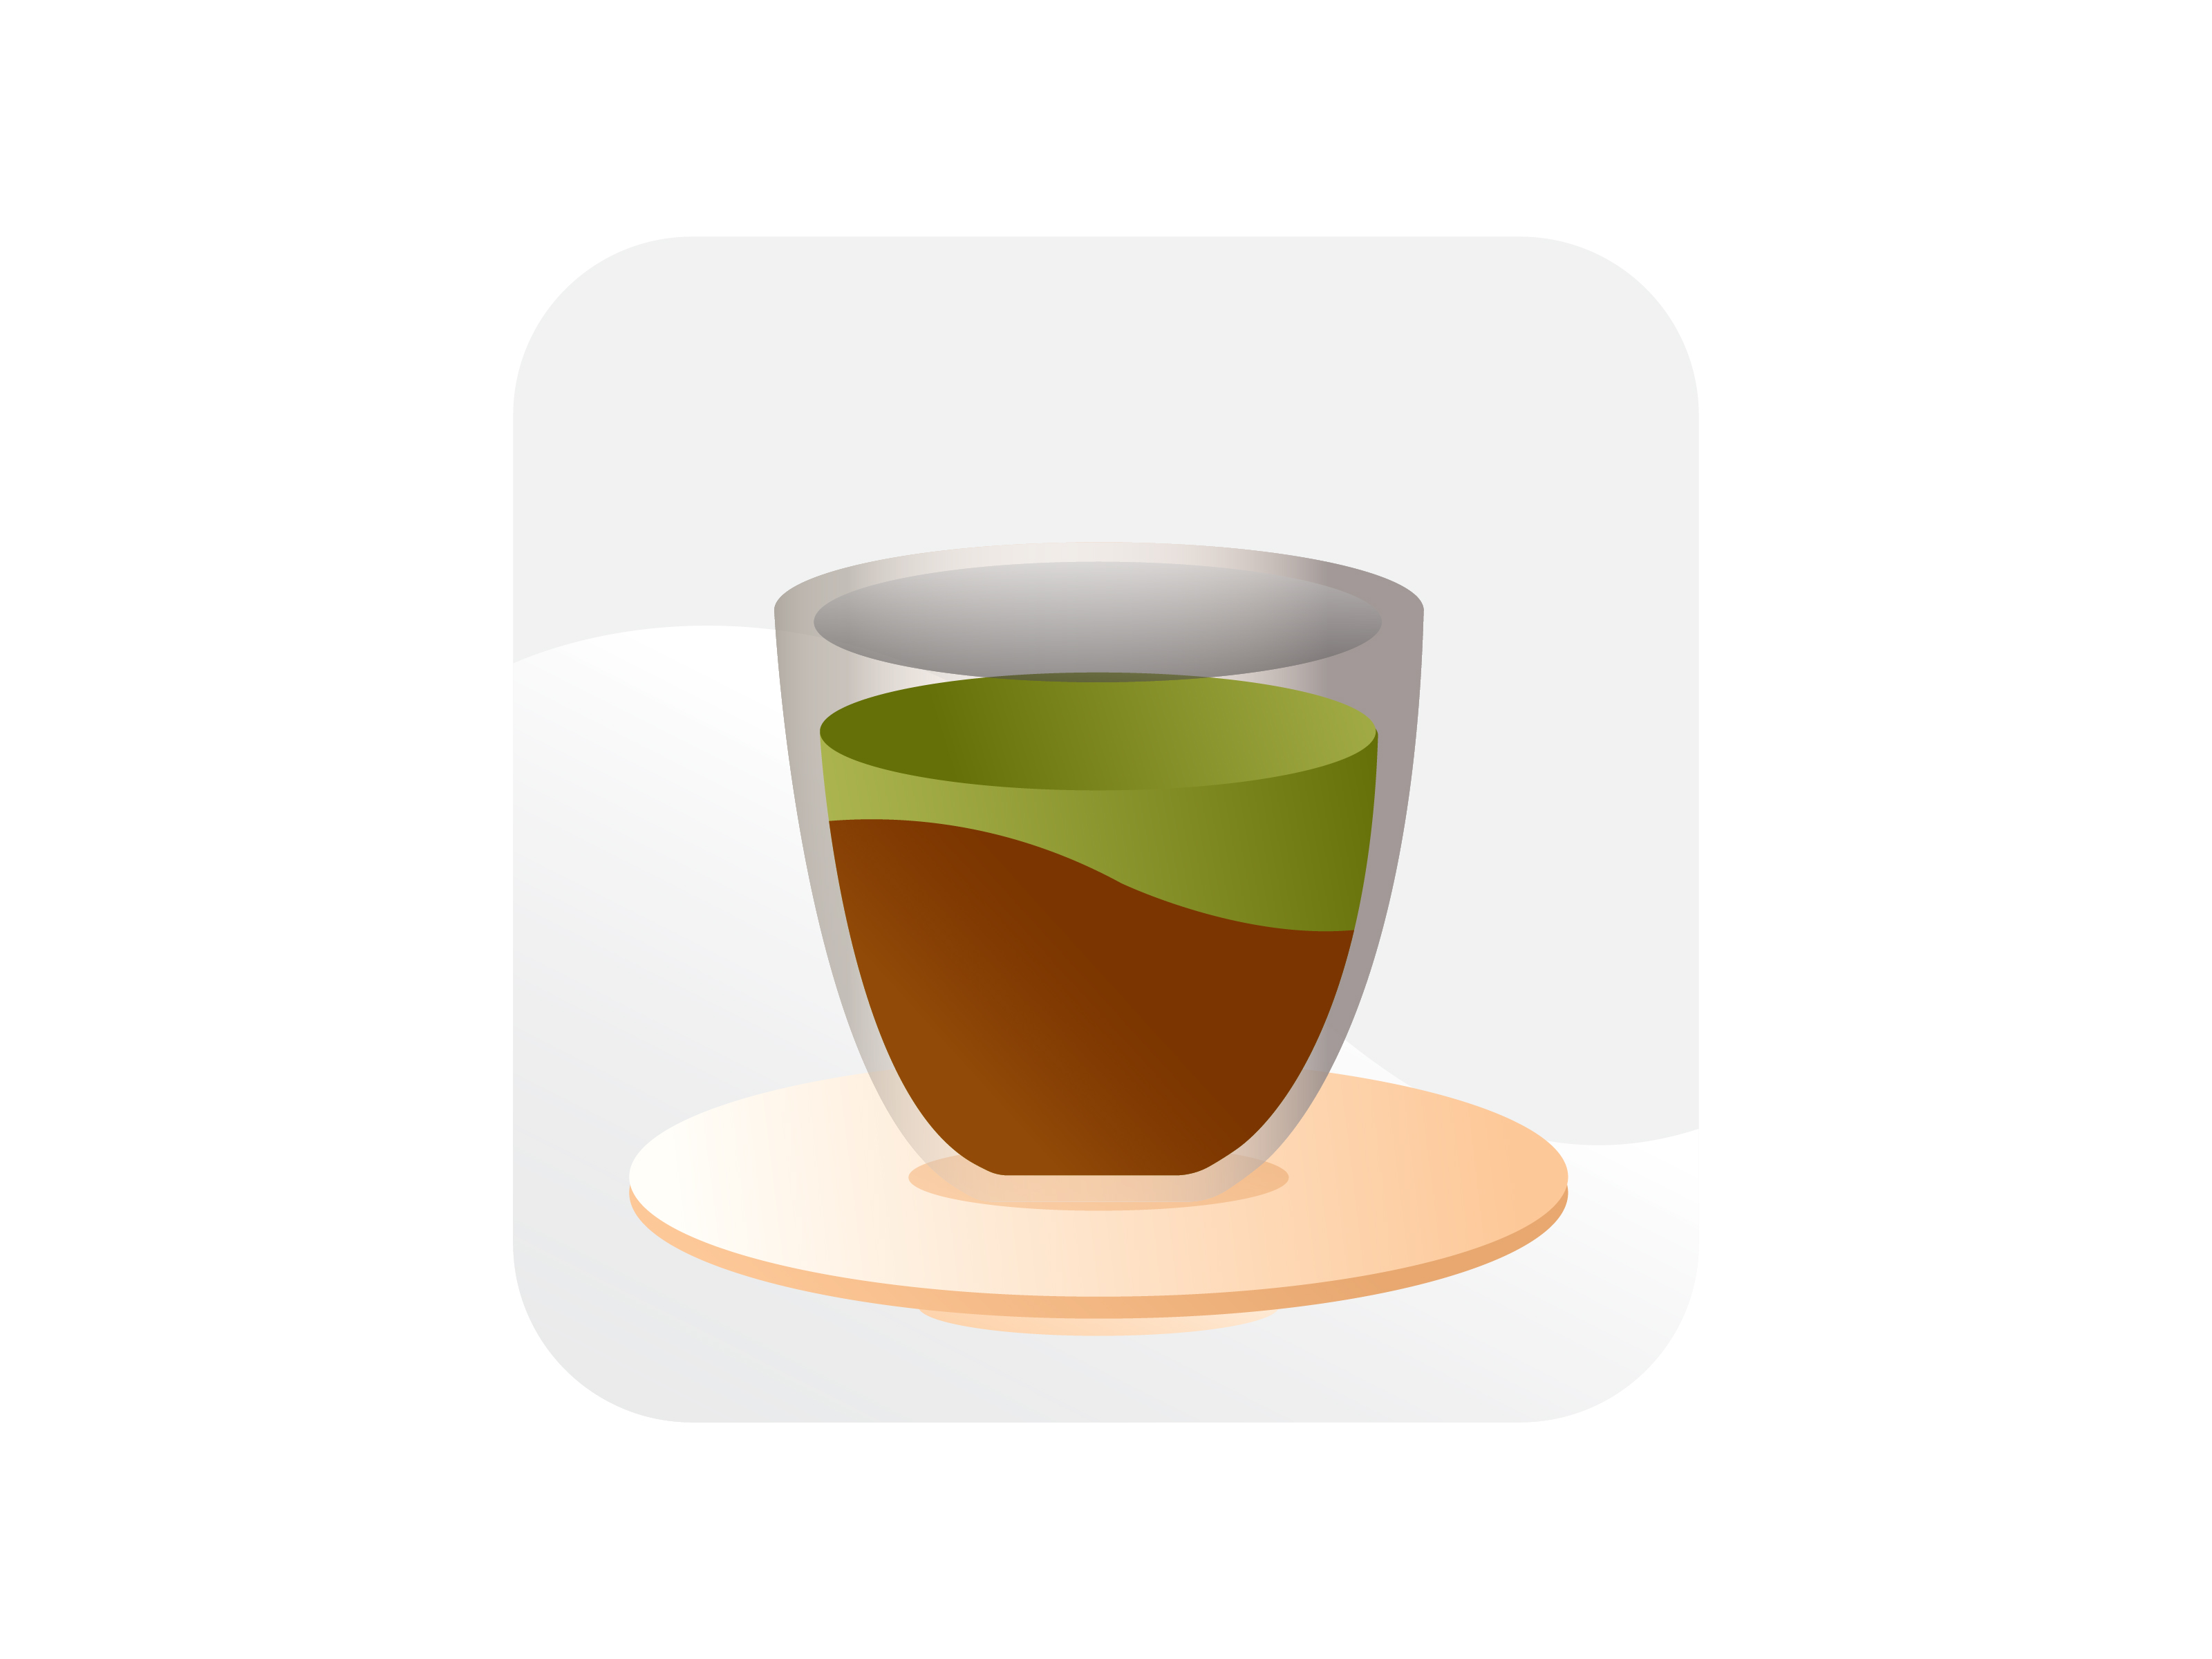 Download Free Hot Greentea Latte Icon Graphic By Samagata Creative Fabrica for Cricut Explore, Silhouette and other cutting machines.